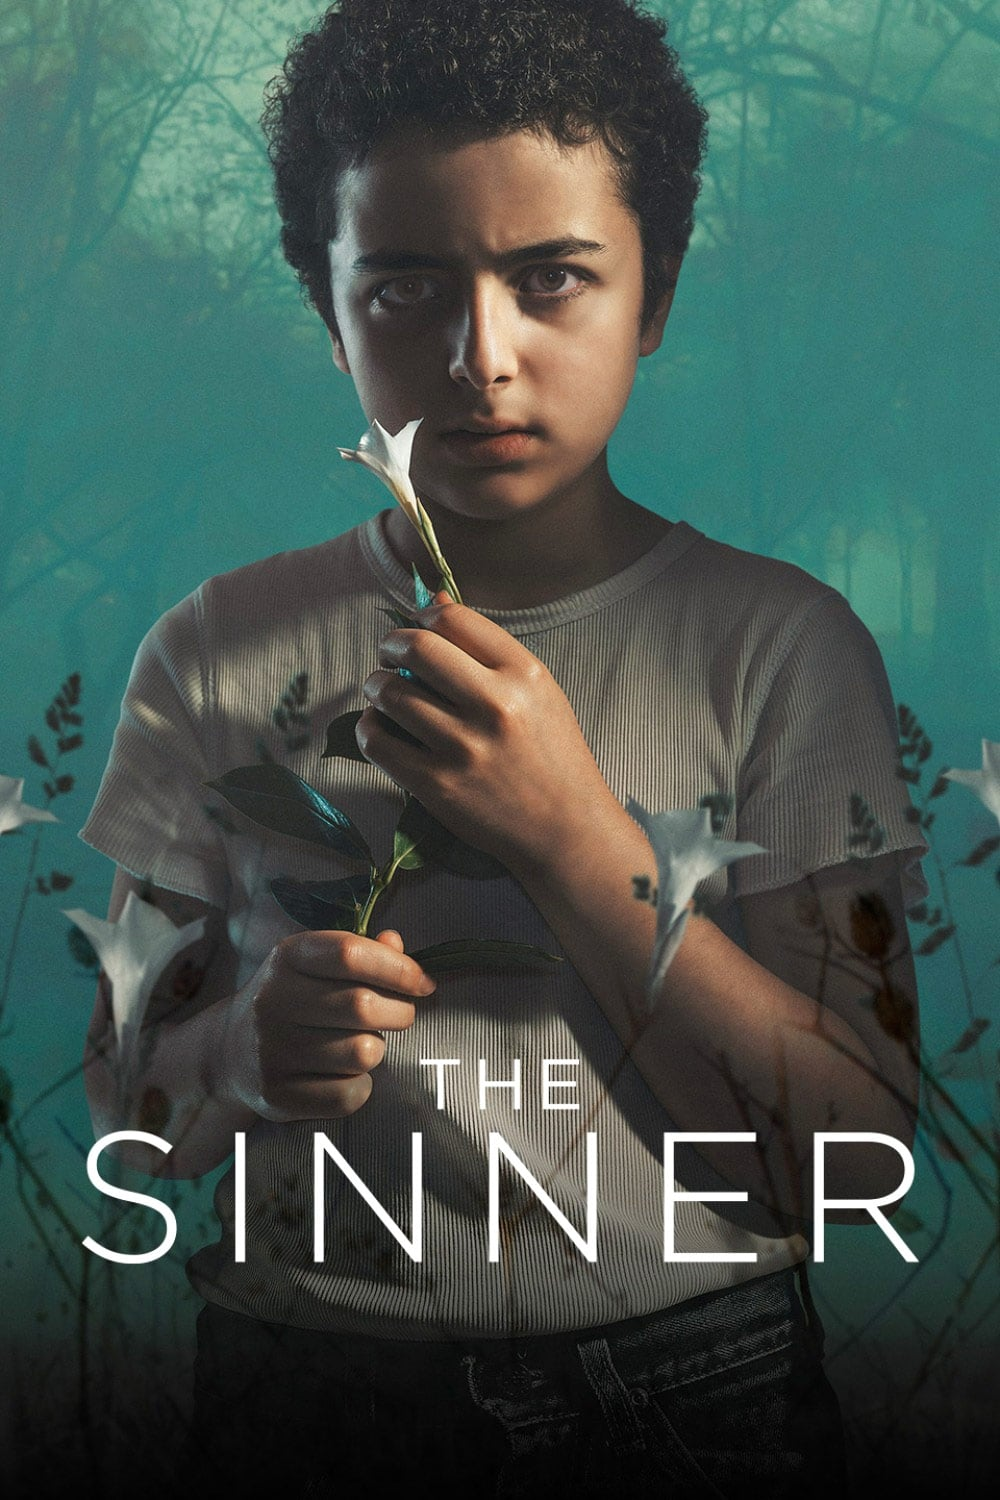 image for The Sinner